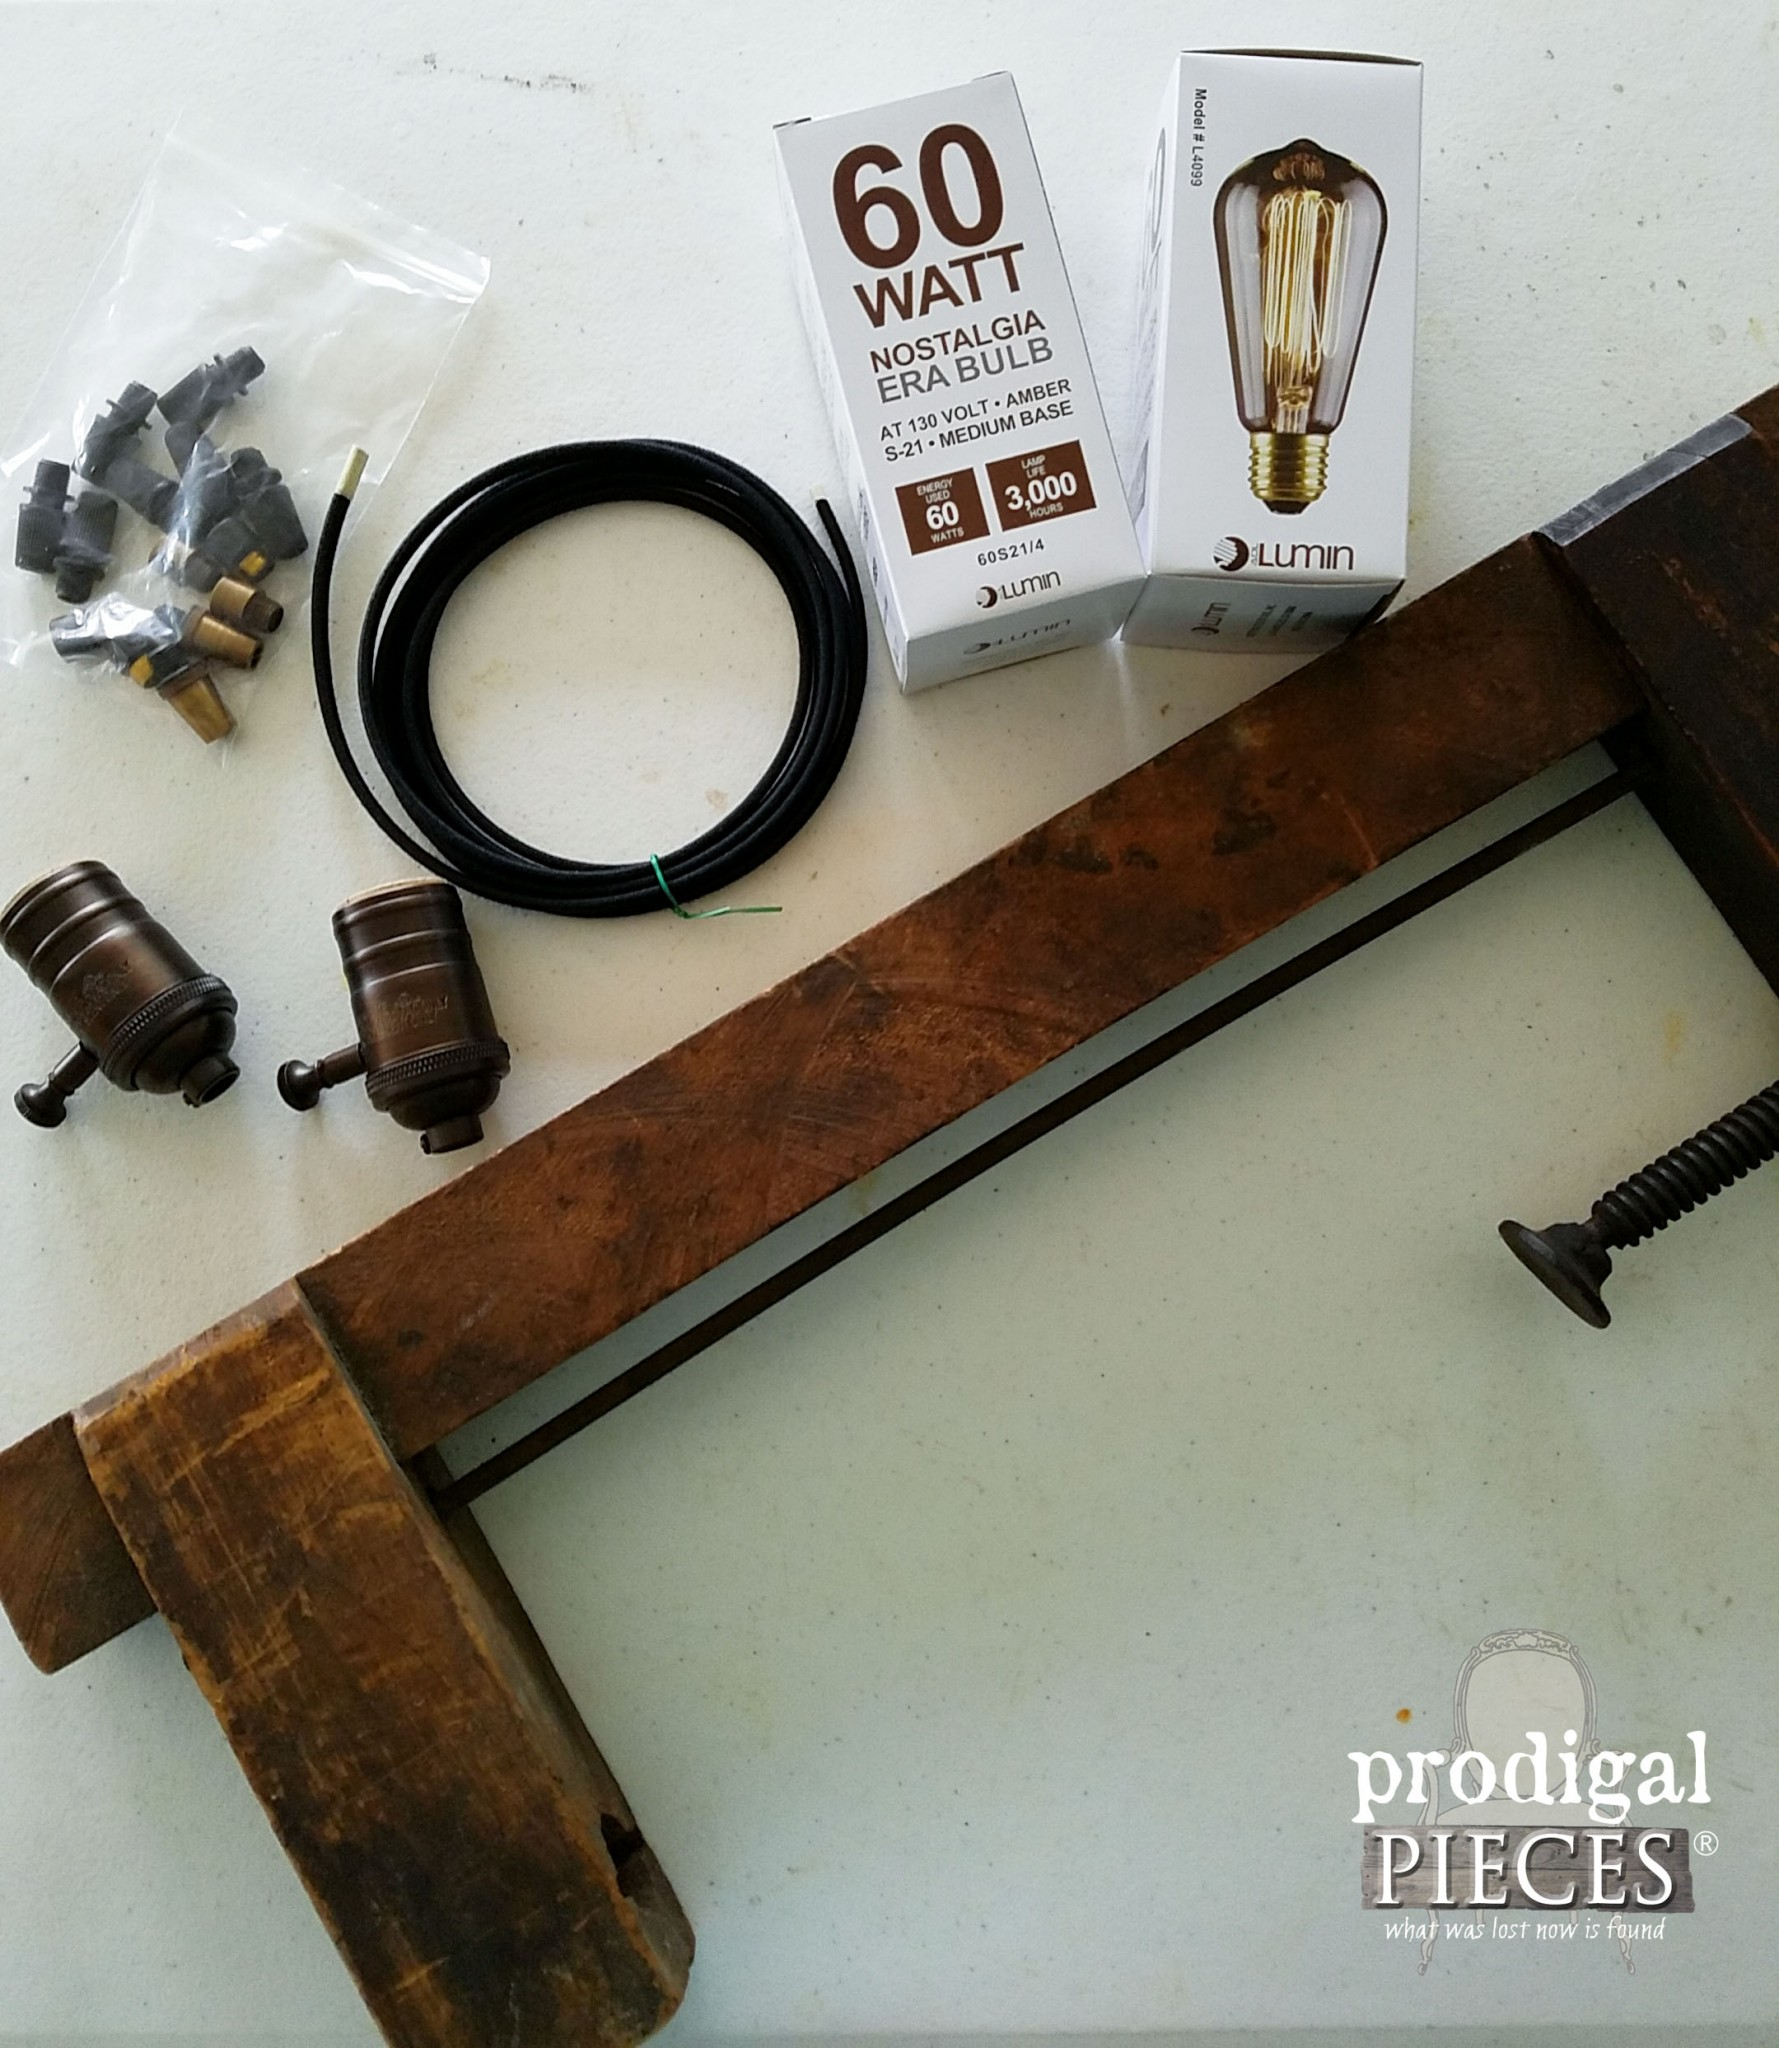 Rustic Farmhouse Lighting Supplies to DIY | Prodigal Pieces | www.prodigalpieces.com